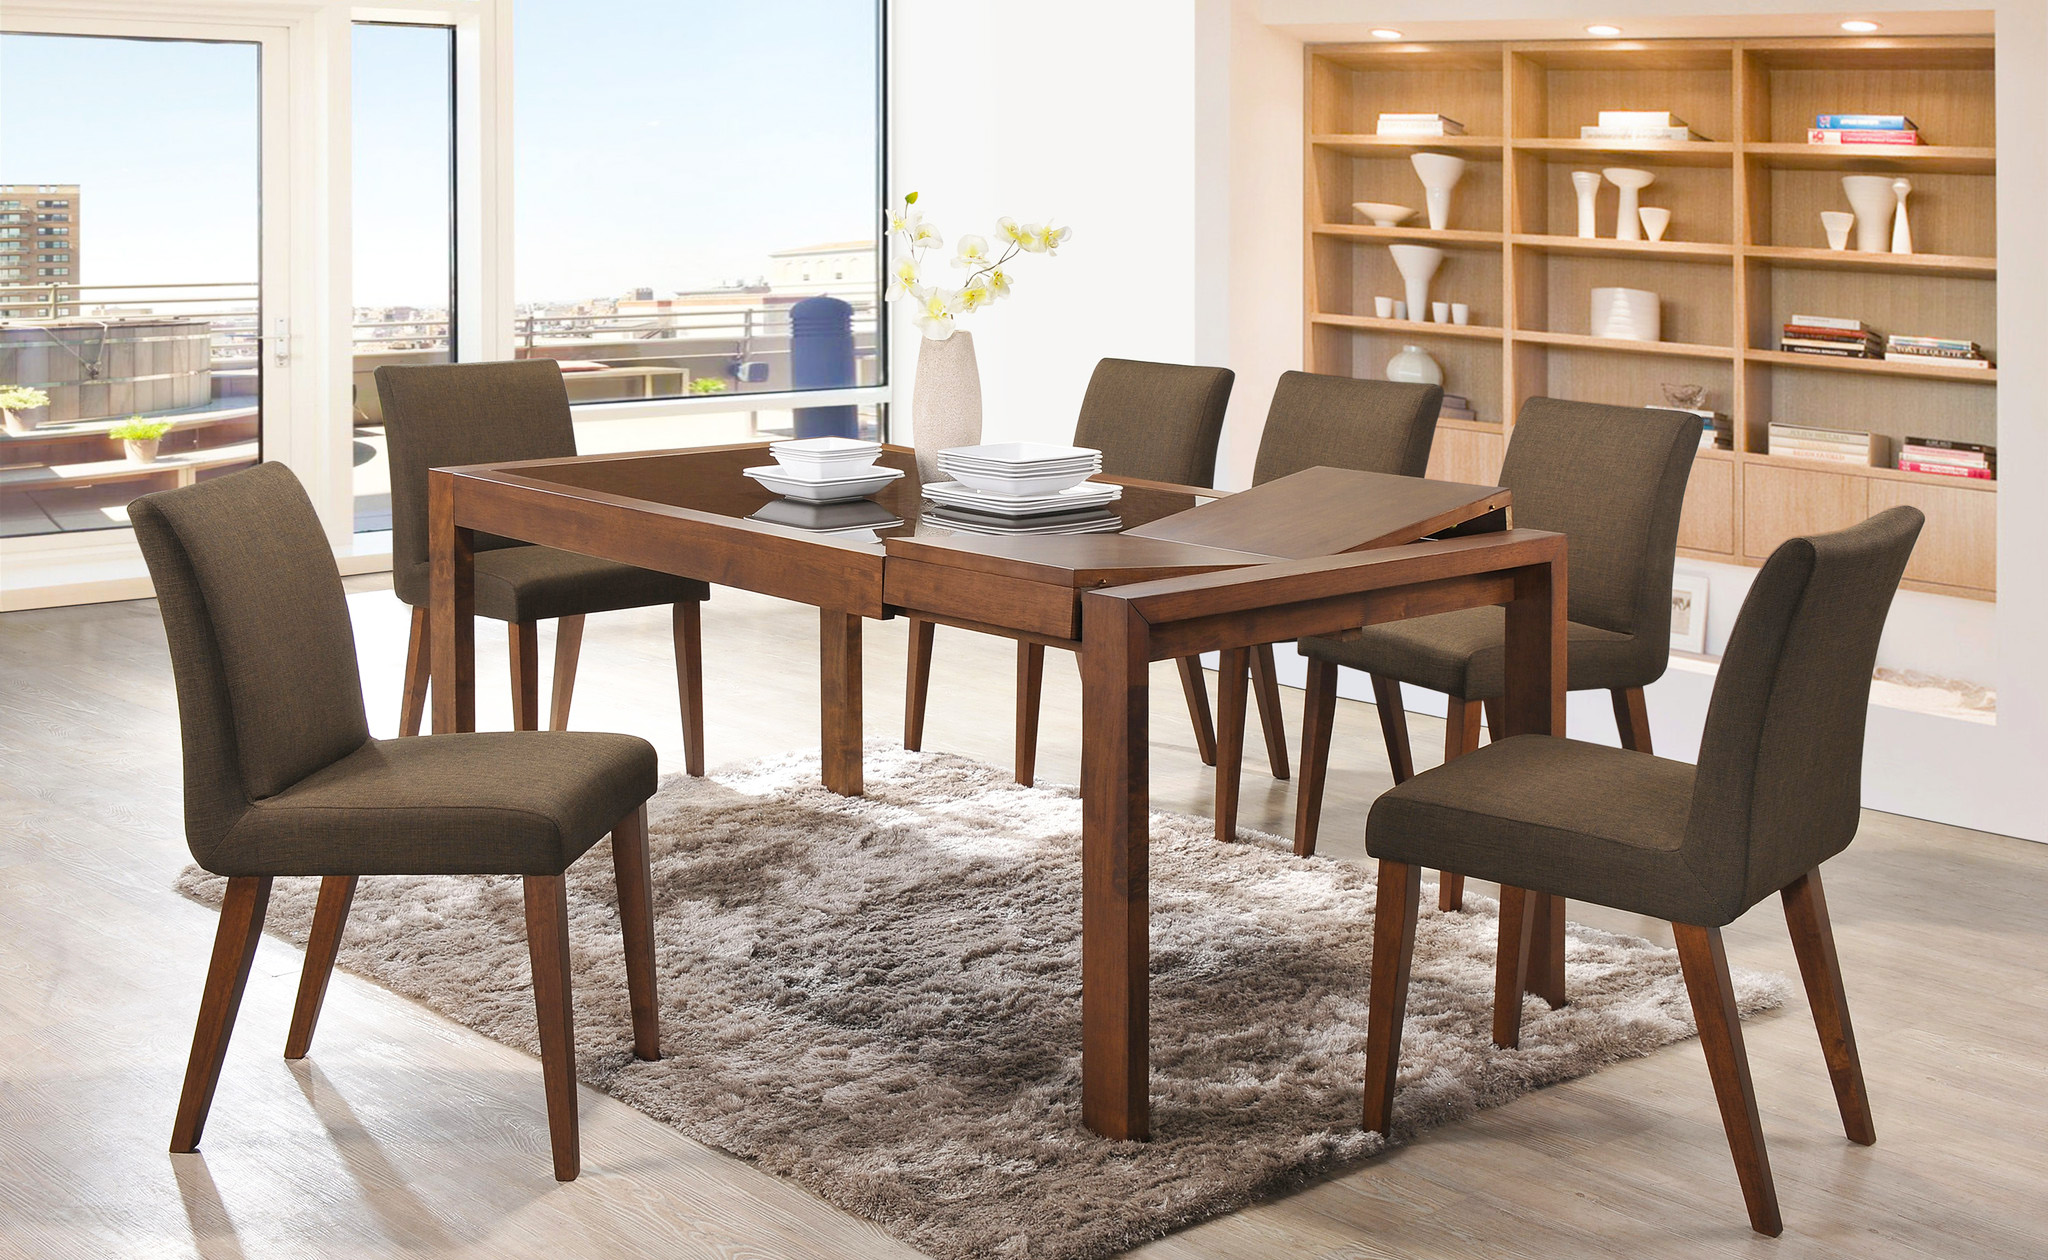 furniture-for-modern-house-in-home-dining-room-furniture-sets-with-four-dining-room-chairs-and-modern-wood-dining-table